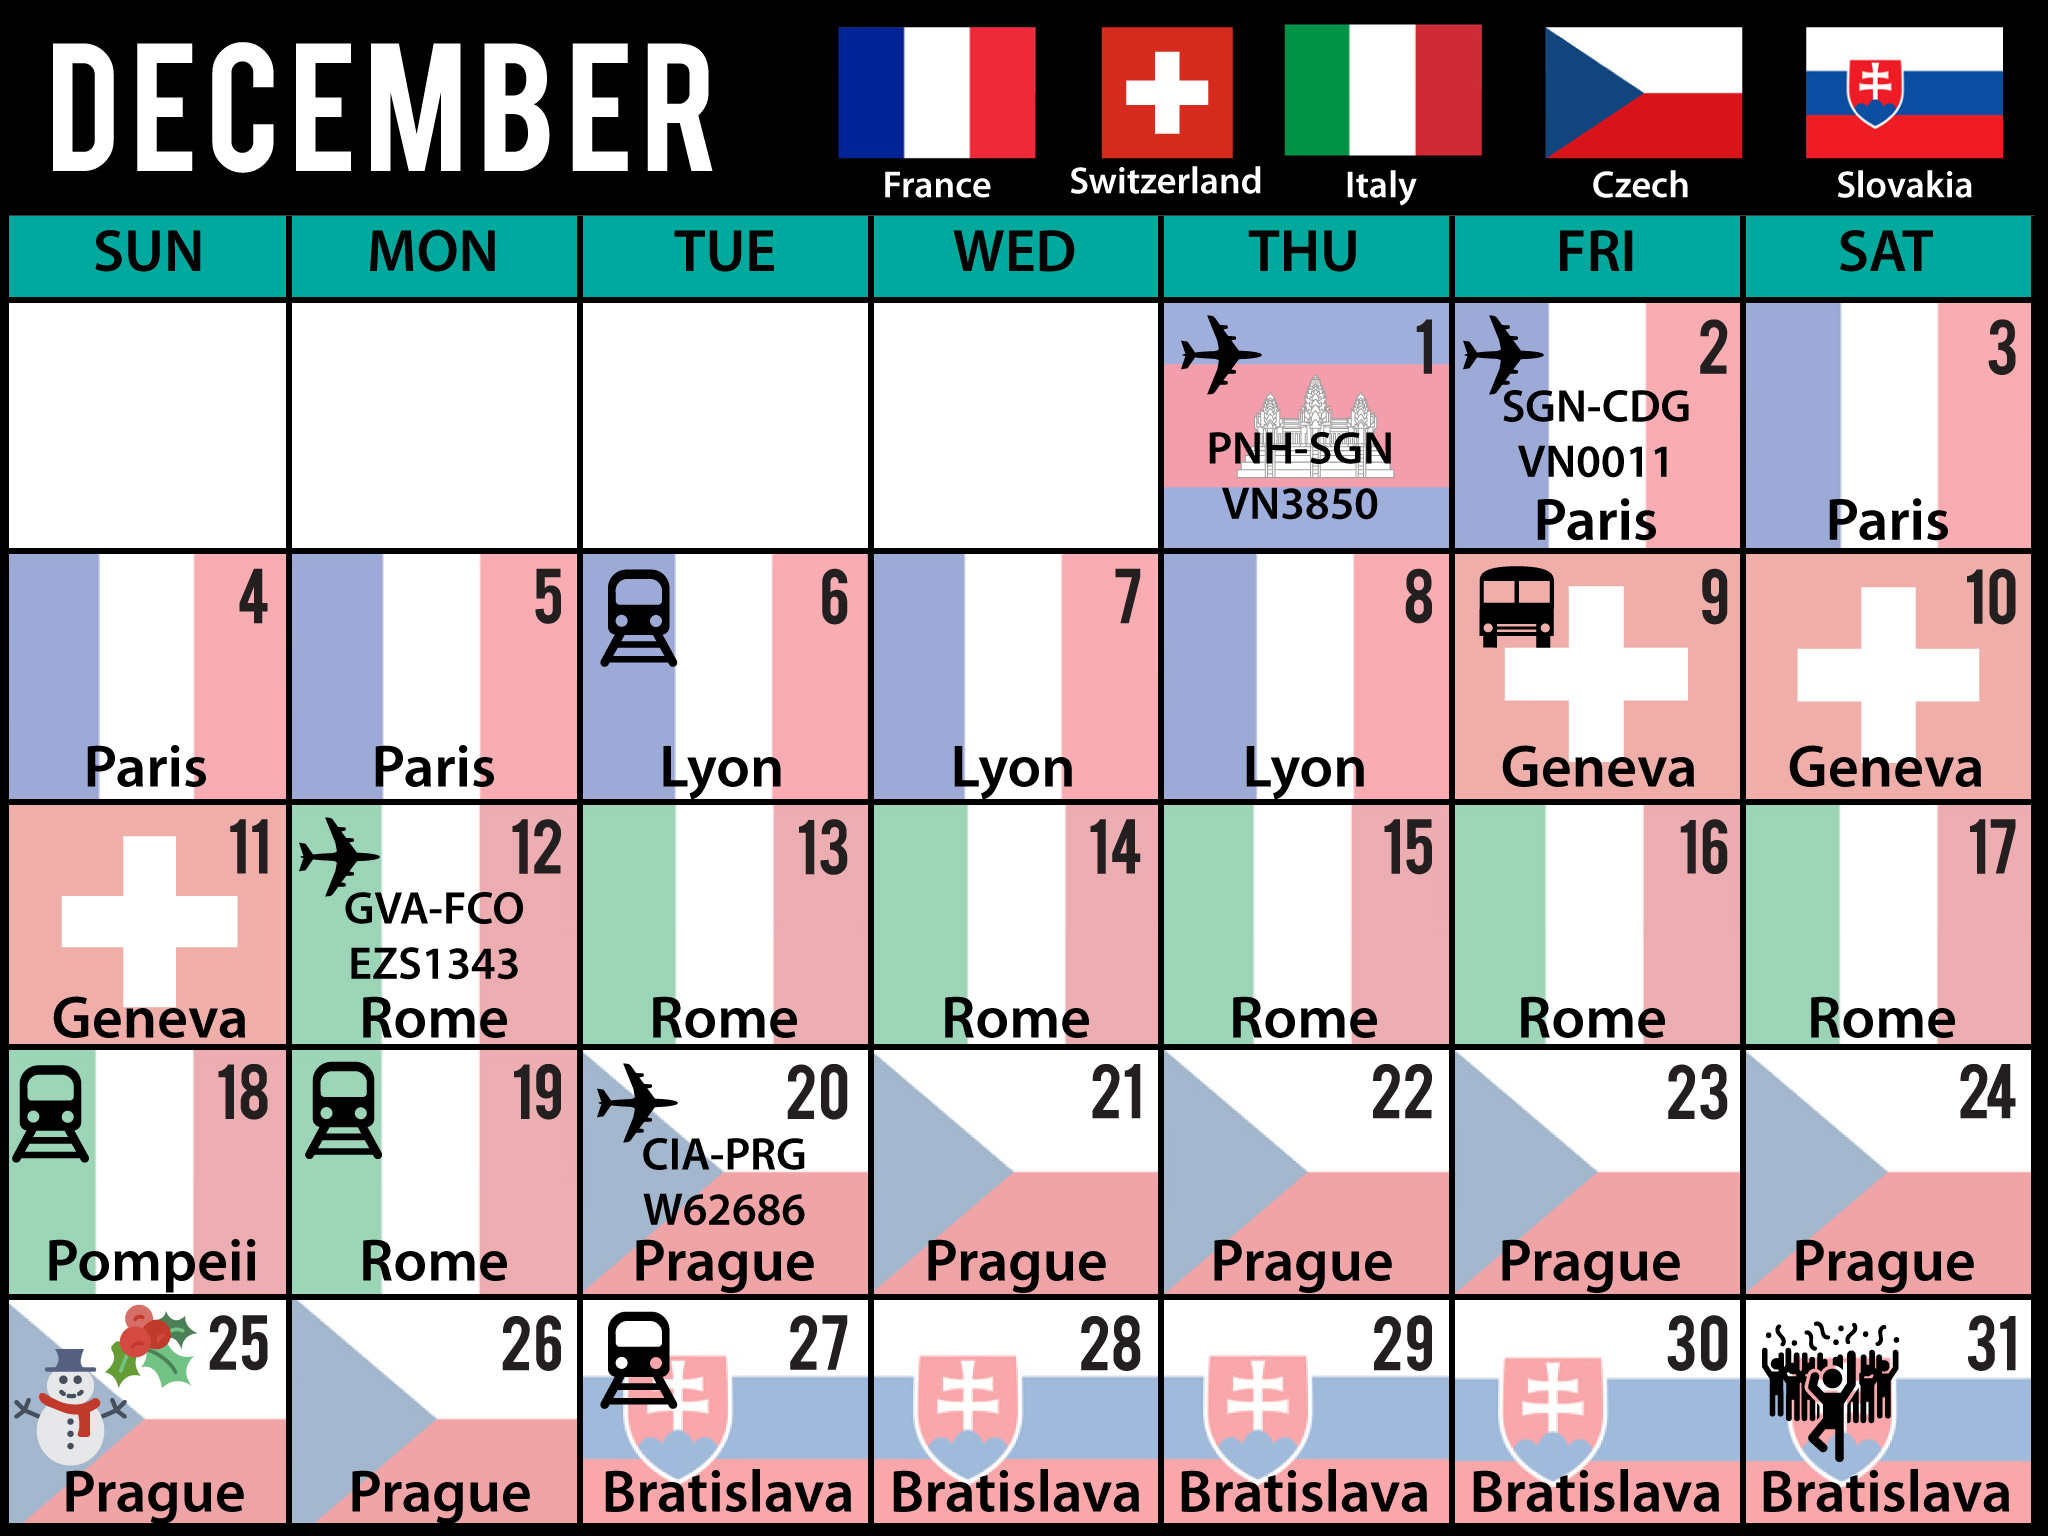 travel calendar used to visually at a glance see where I am travelling easily and quickly made for tablet ipad samsung and desktop computer as a desktop wallpaper holiday infographic design by lakazdi freelance graphic designer specialising in books and documents